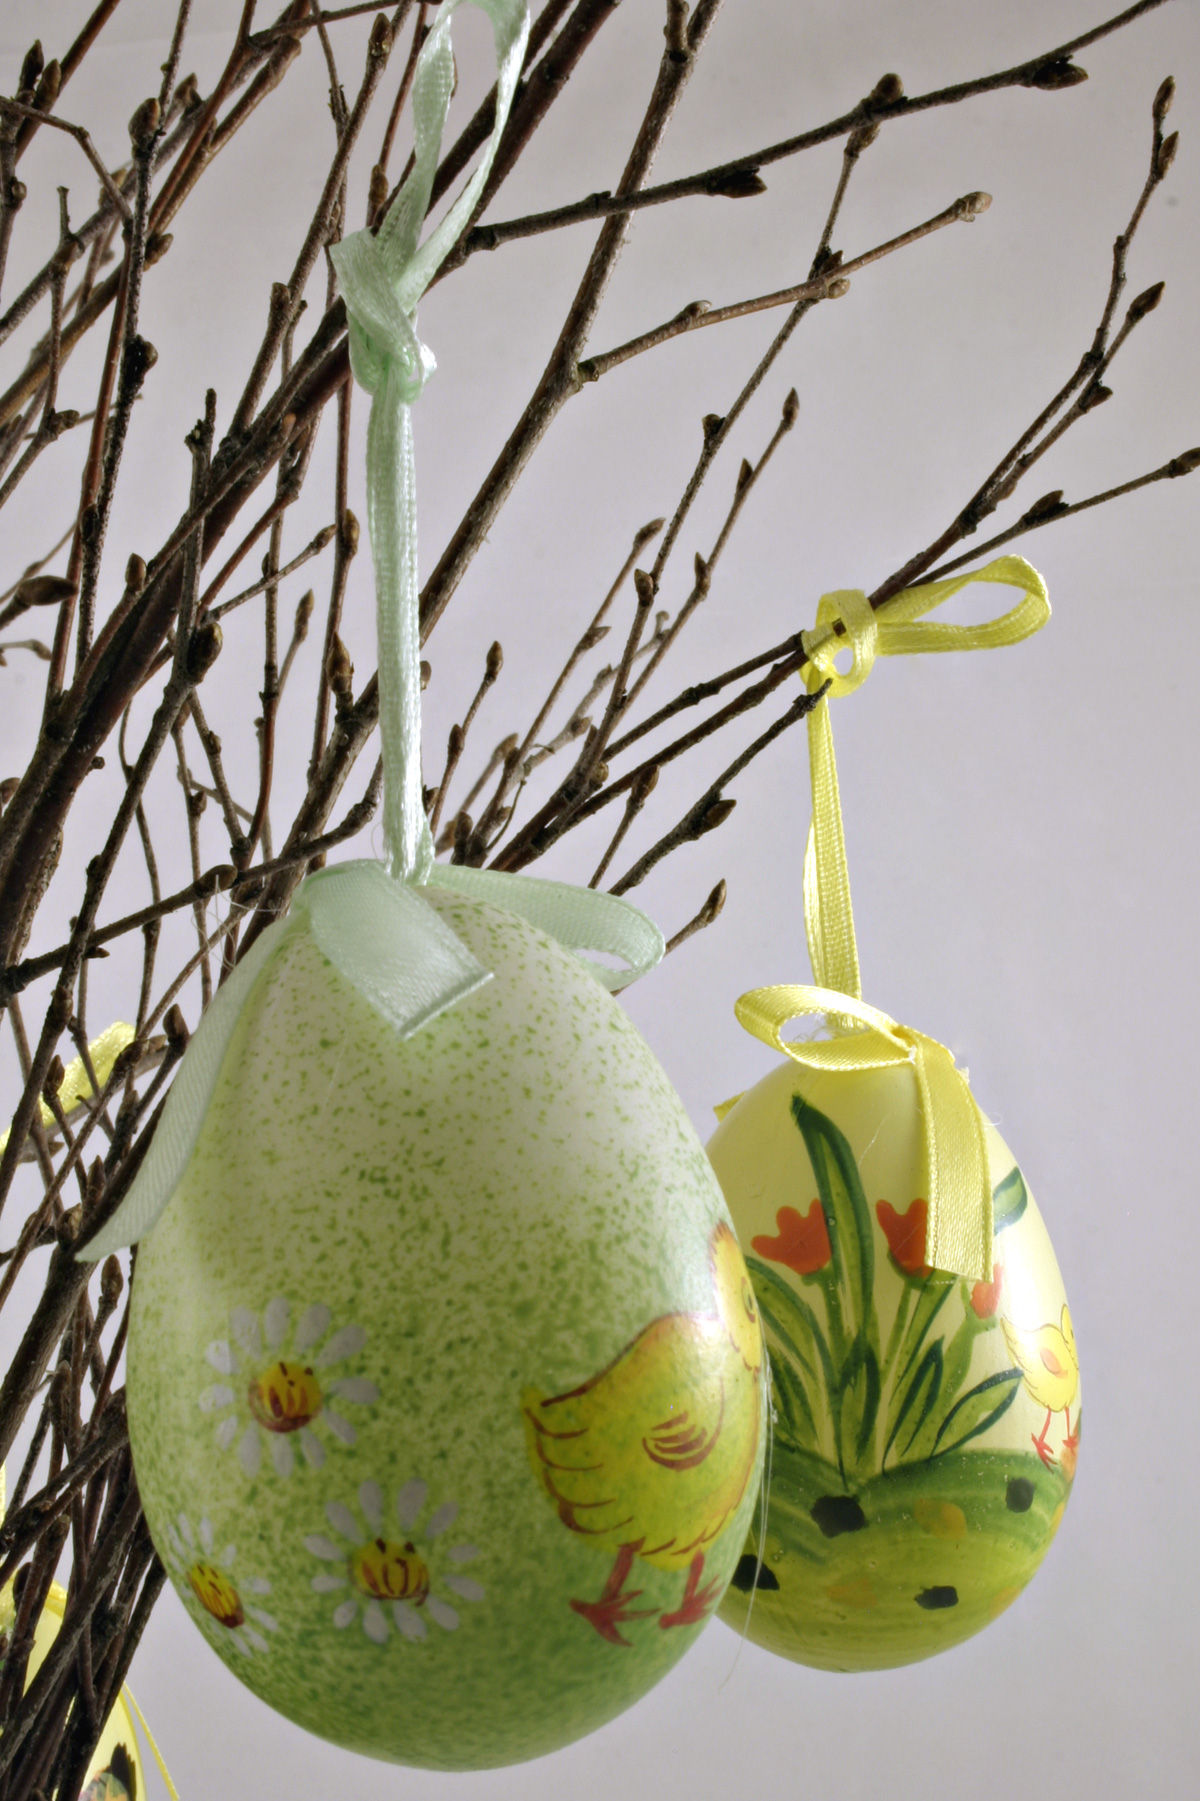 Easter eggs, Branches, Easter, Eggs, Green, HQ Photo